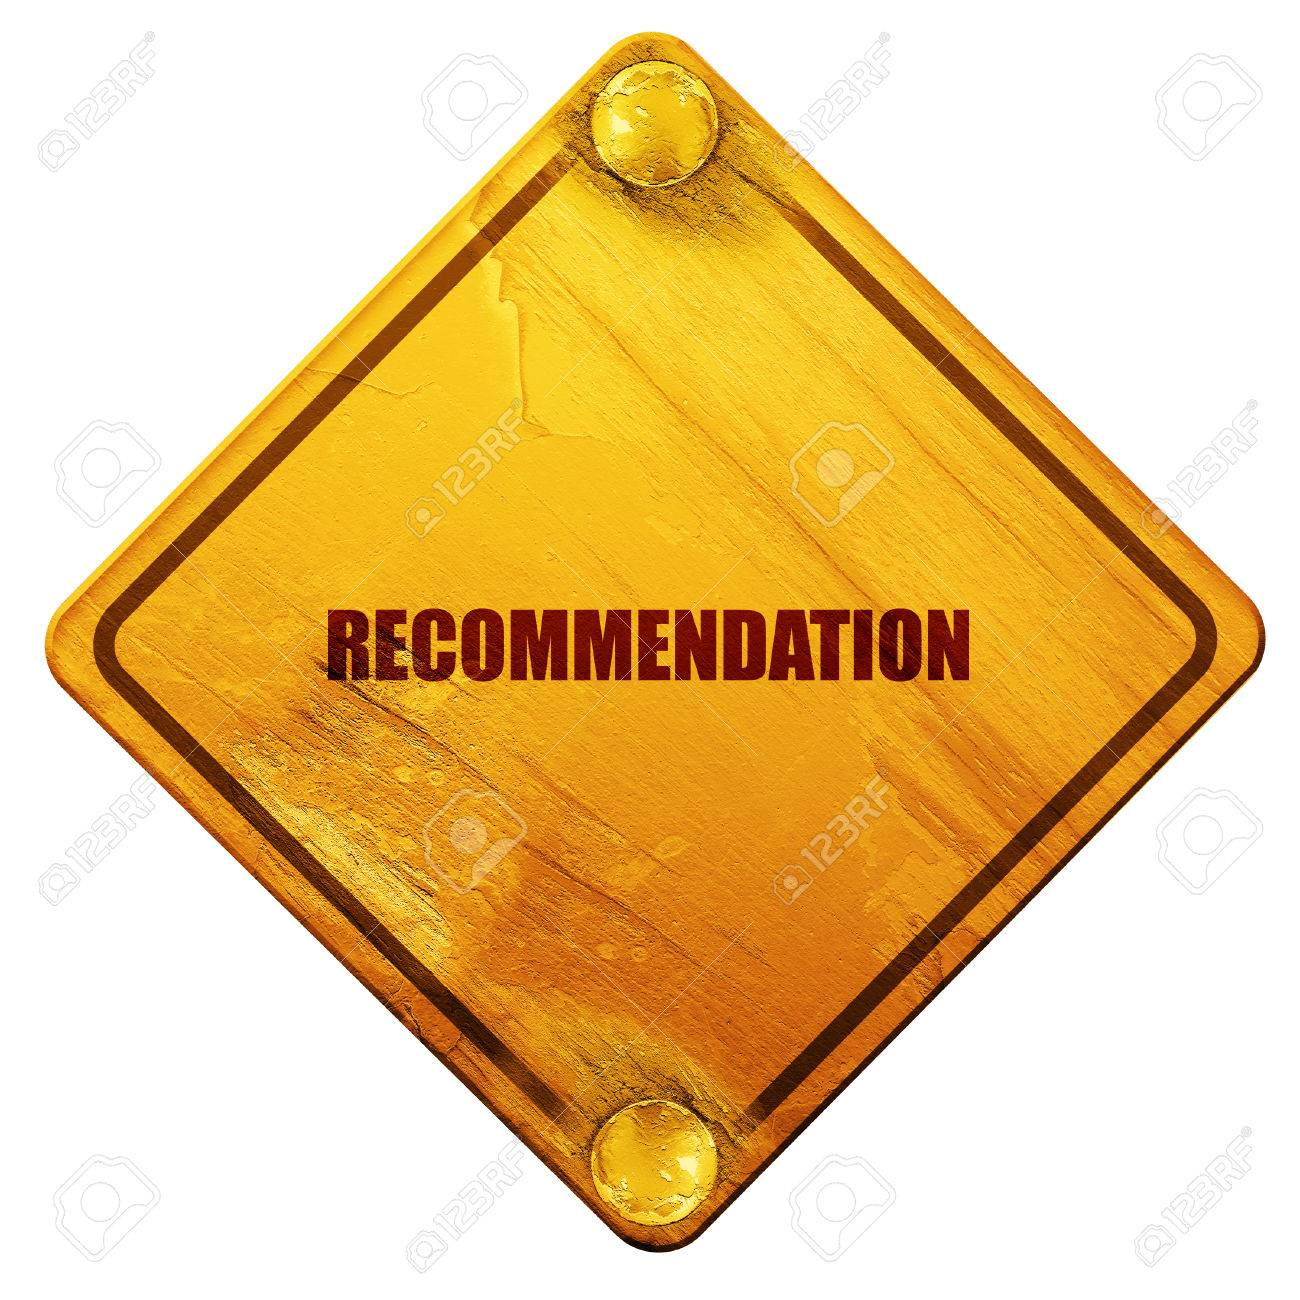 recommendation d rendering yellow road sign on a white stock photo recommendation 3d rendering yellow road sign on a white background